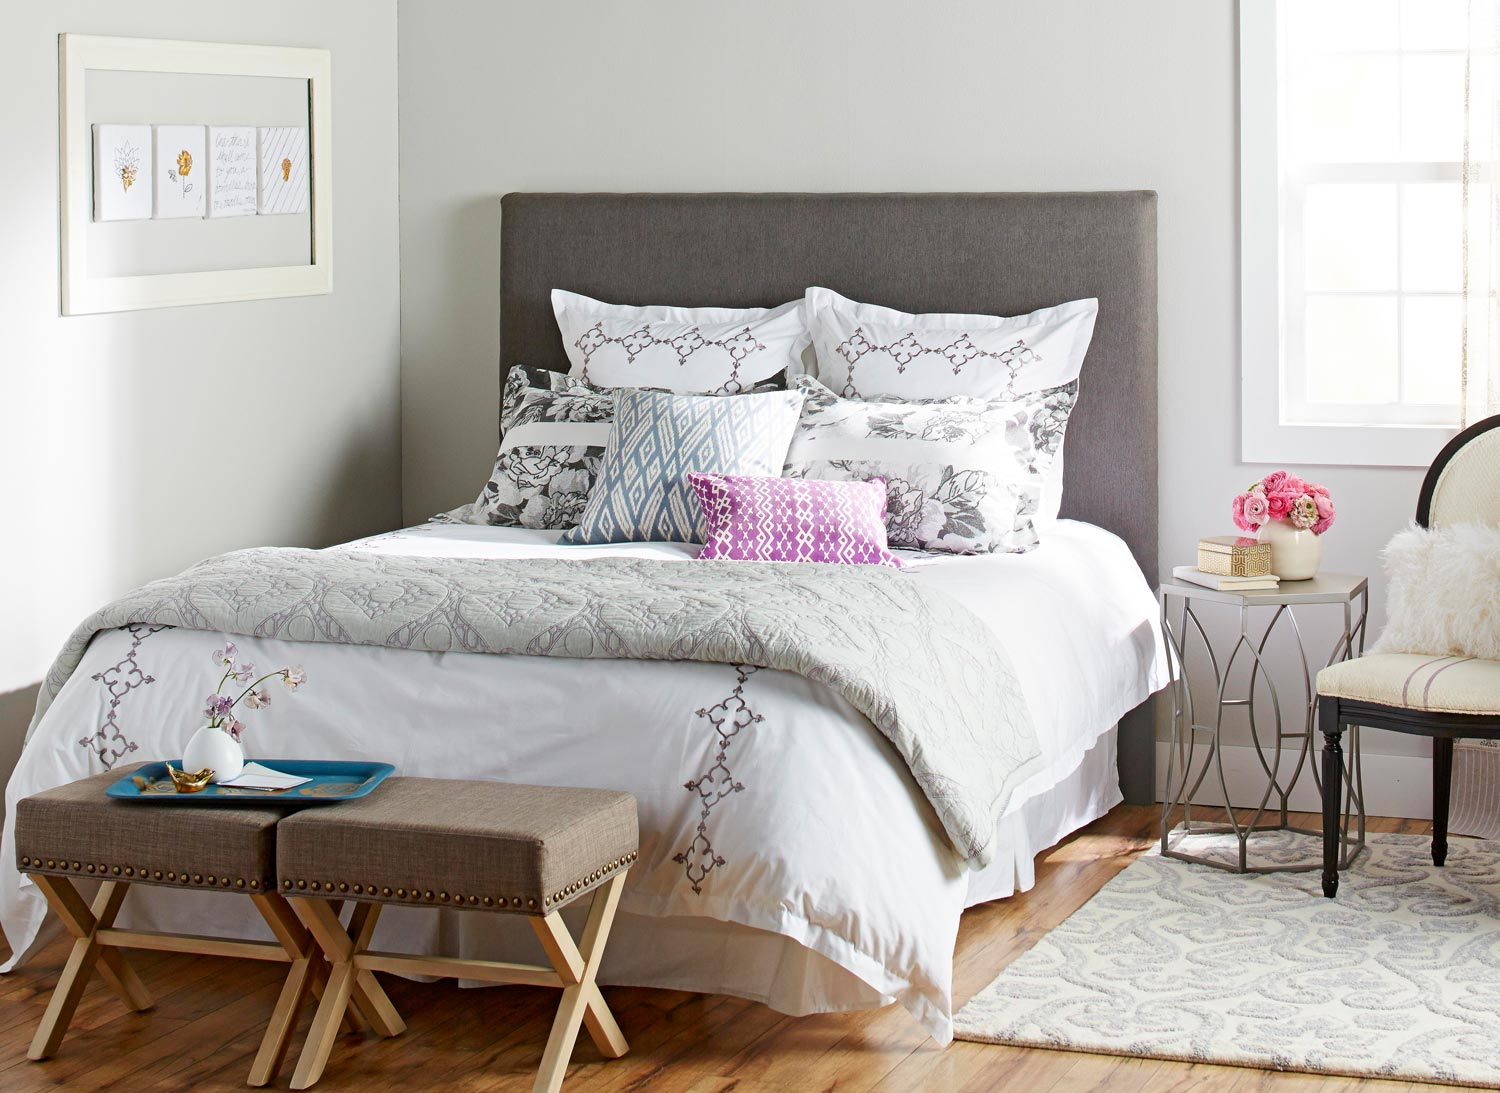 DIY Upholstered Headboards | Midwest Living